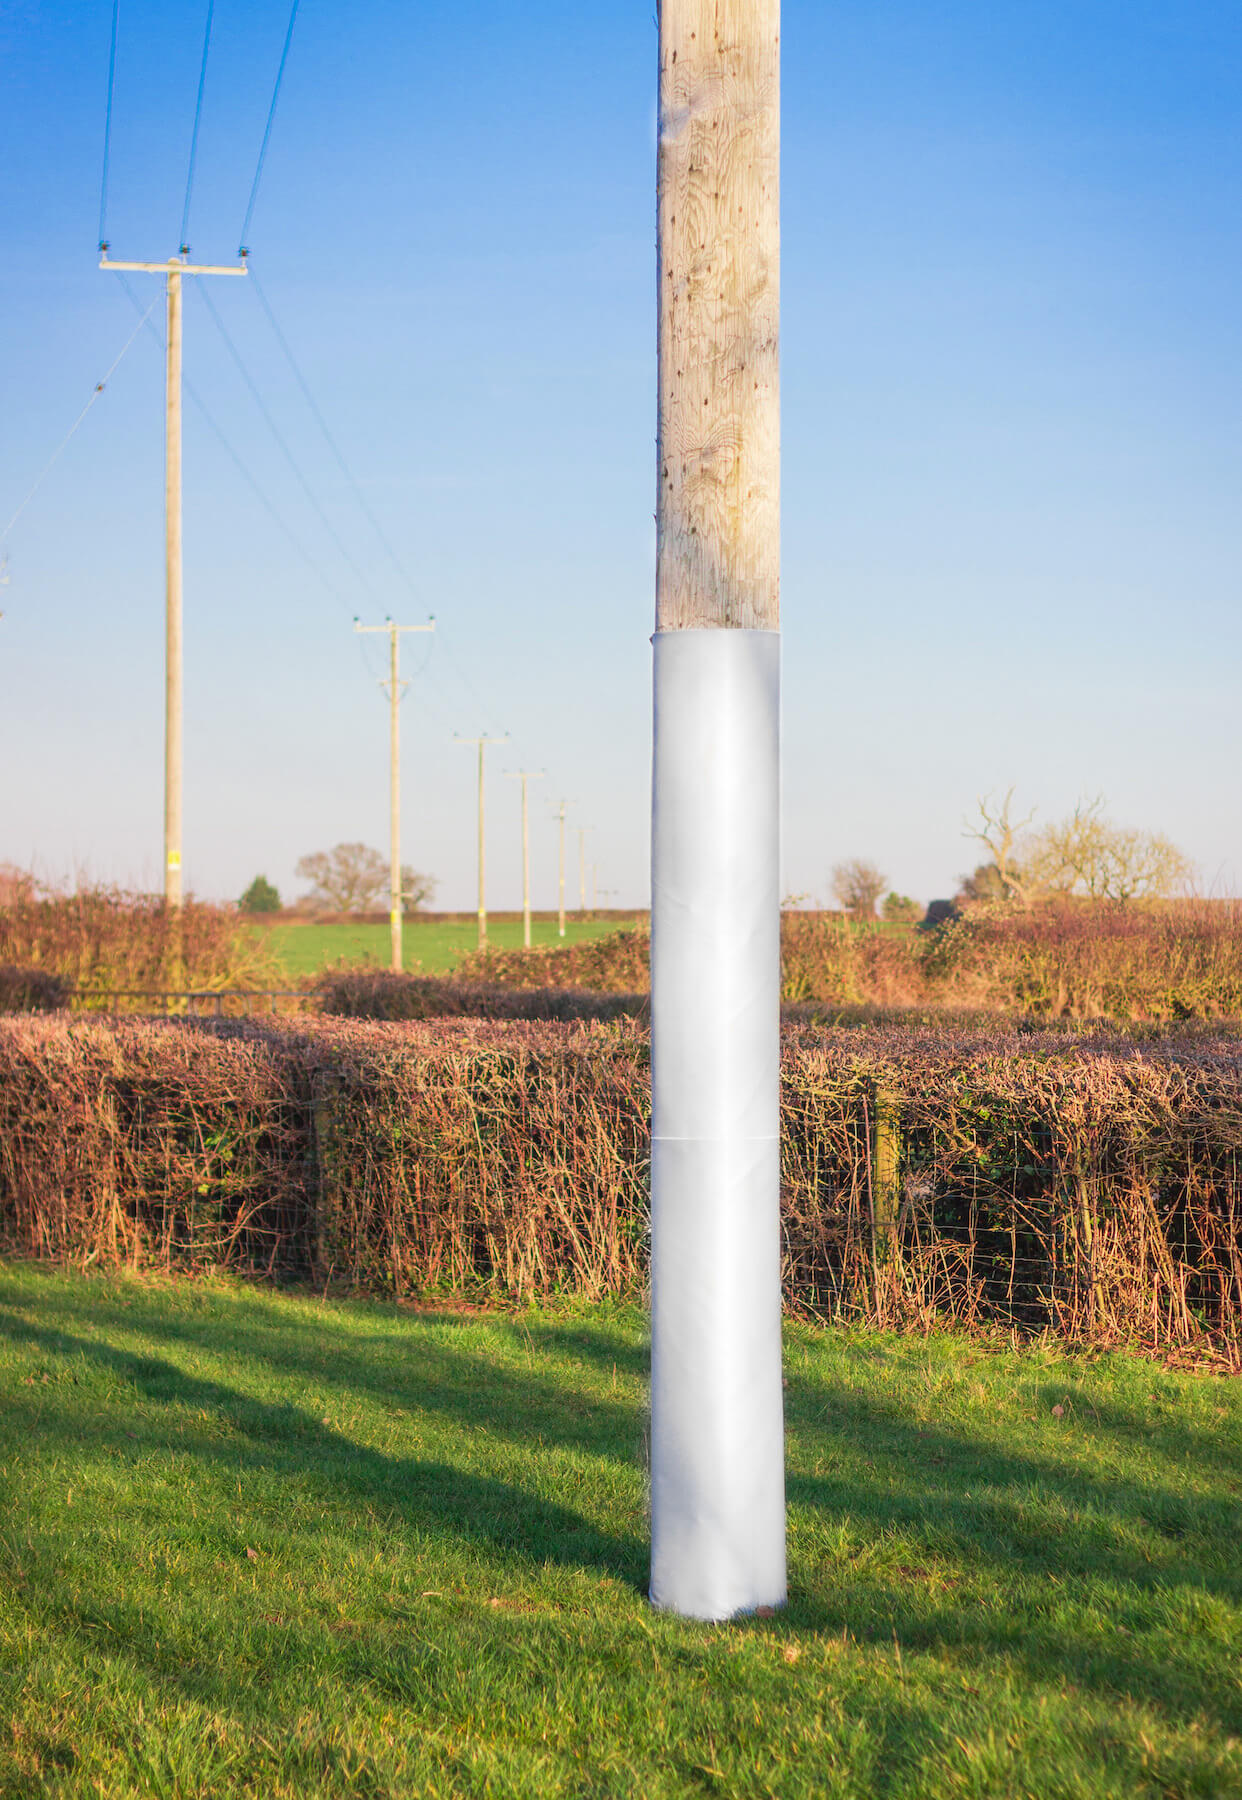 Polesaver fire fabric shown on a wooden utility pole in field